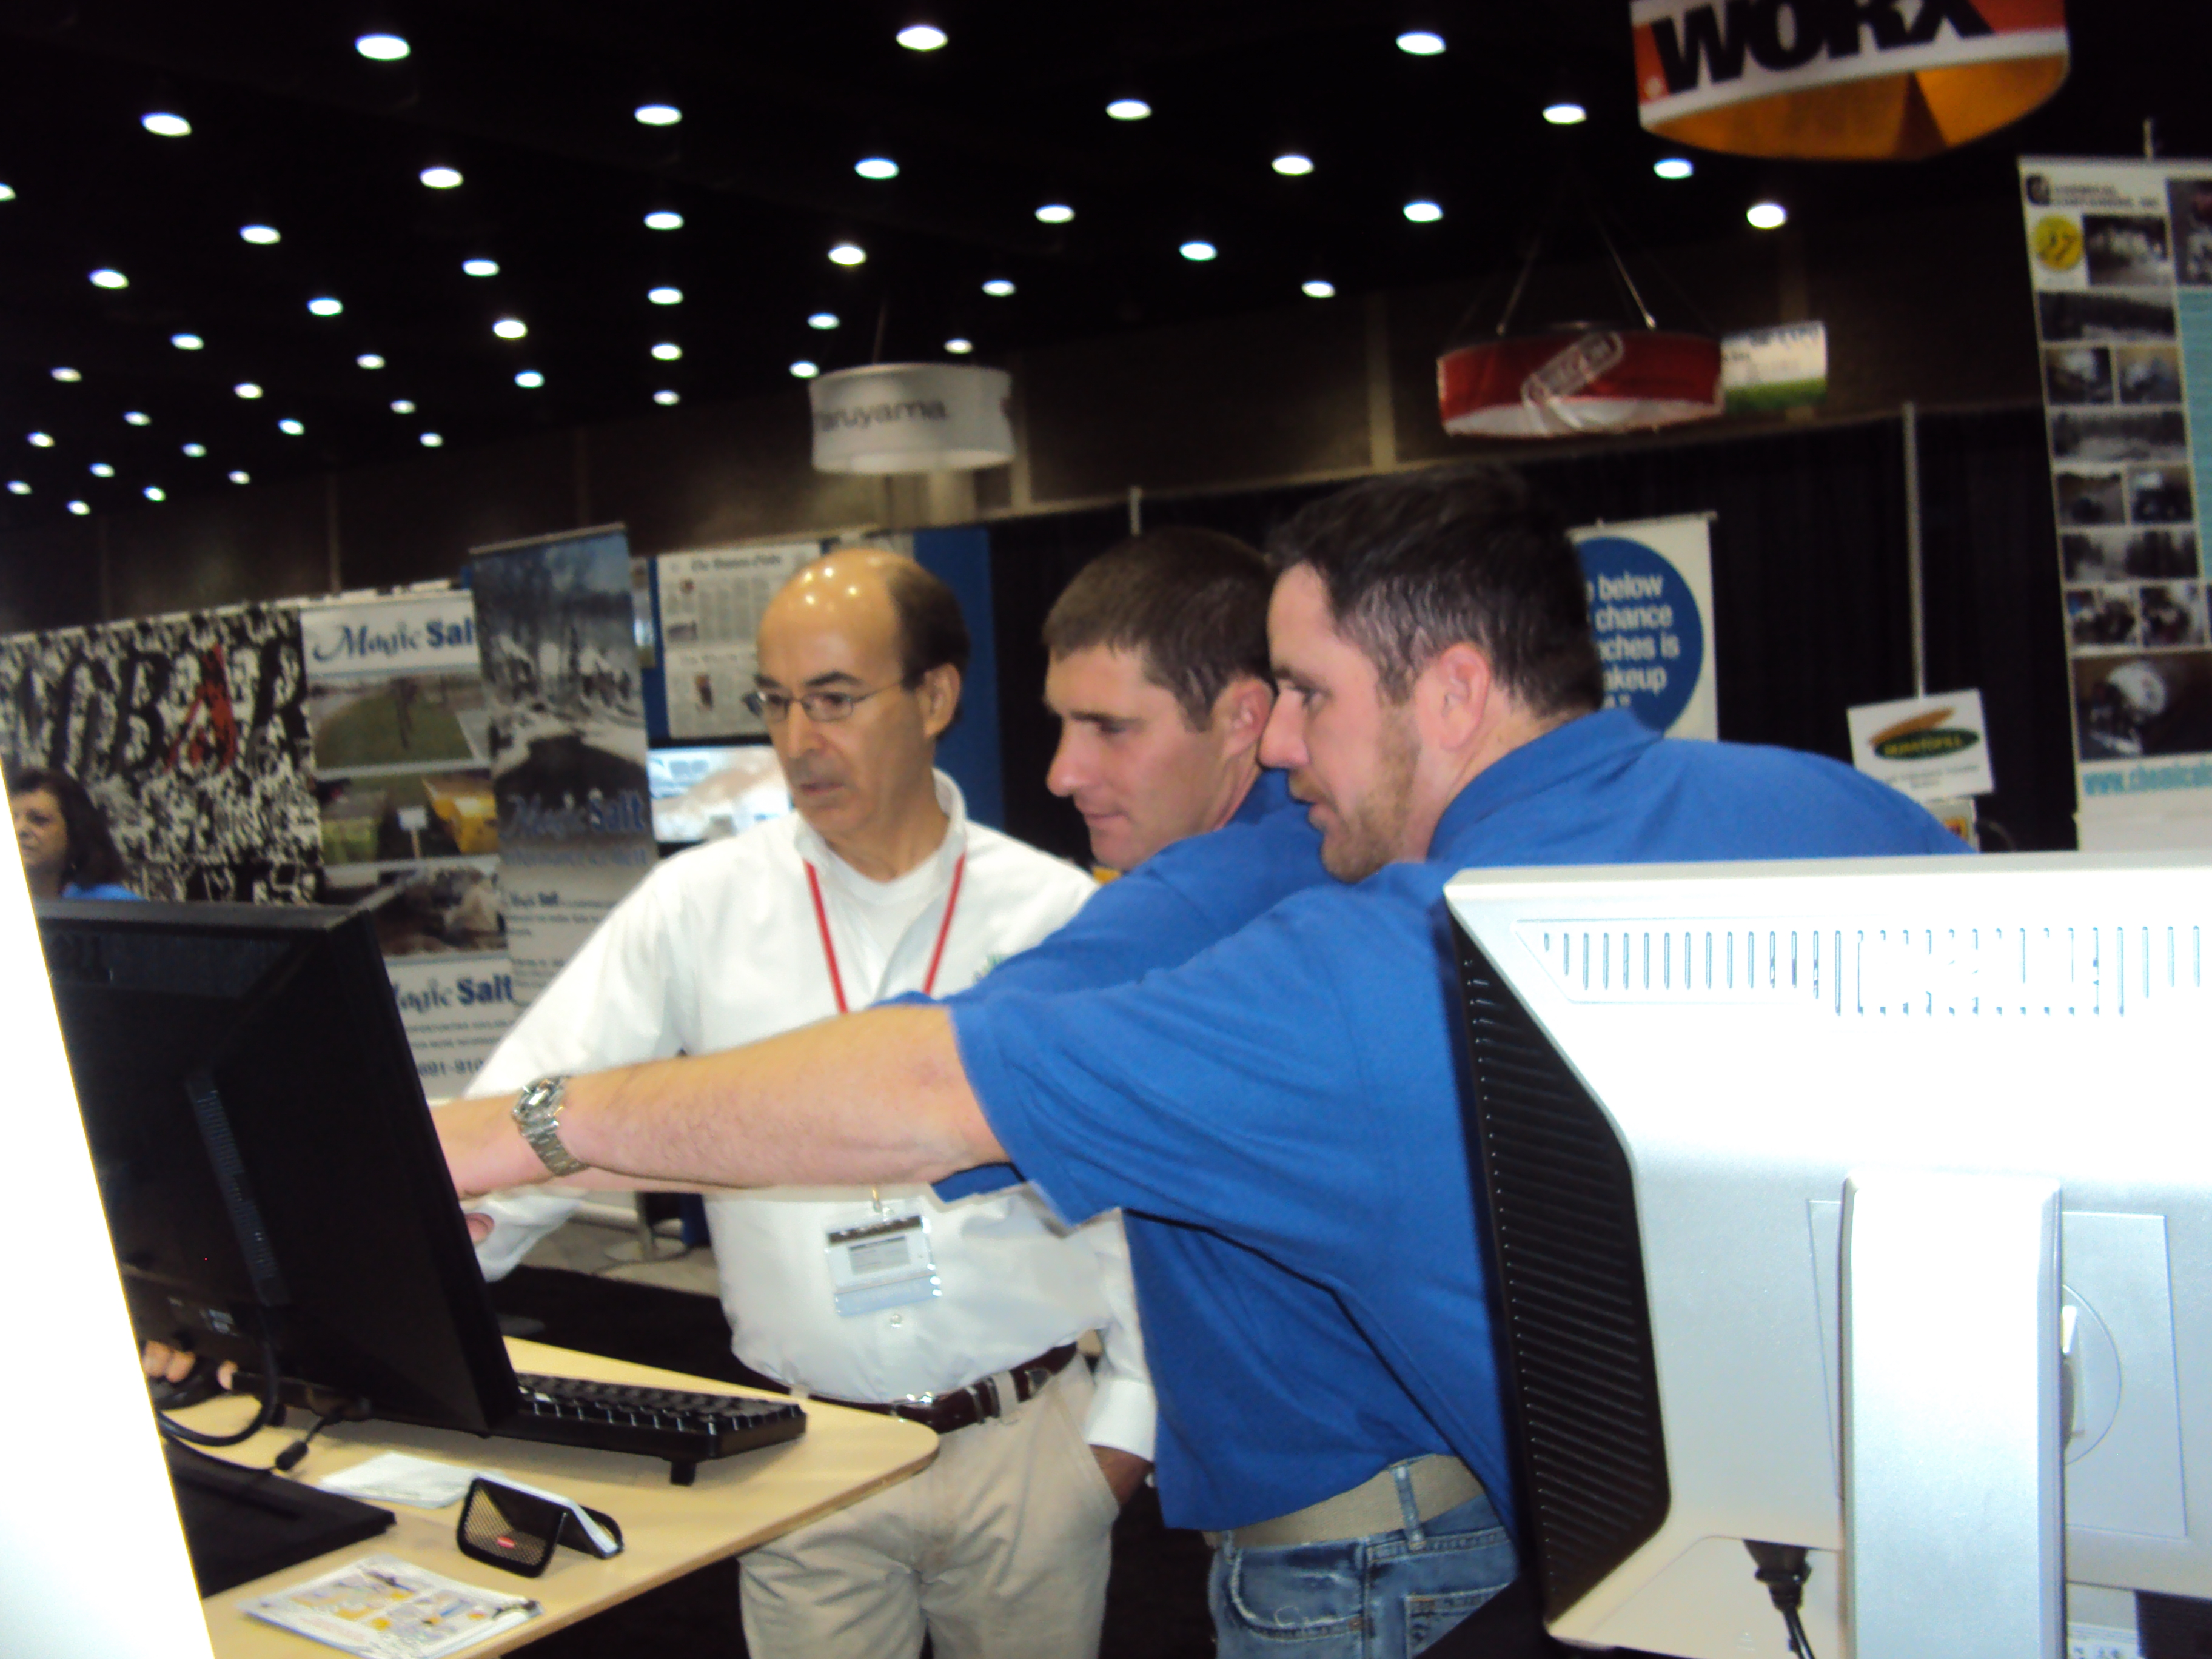 Chris Ascolese demonstrating Go iLawn to booth visitors at GIE+EXPO.